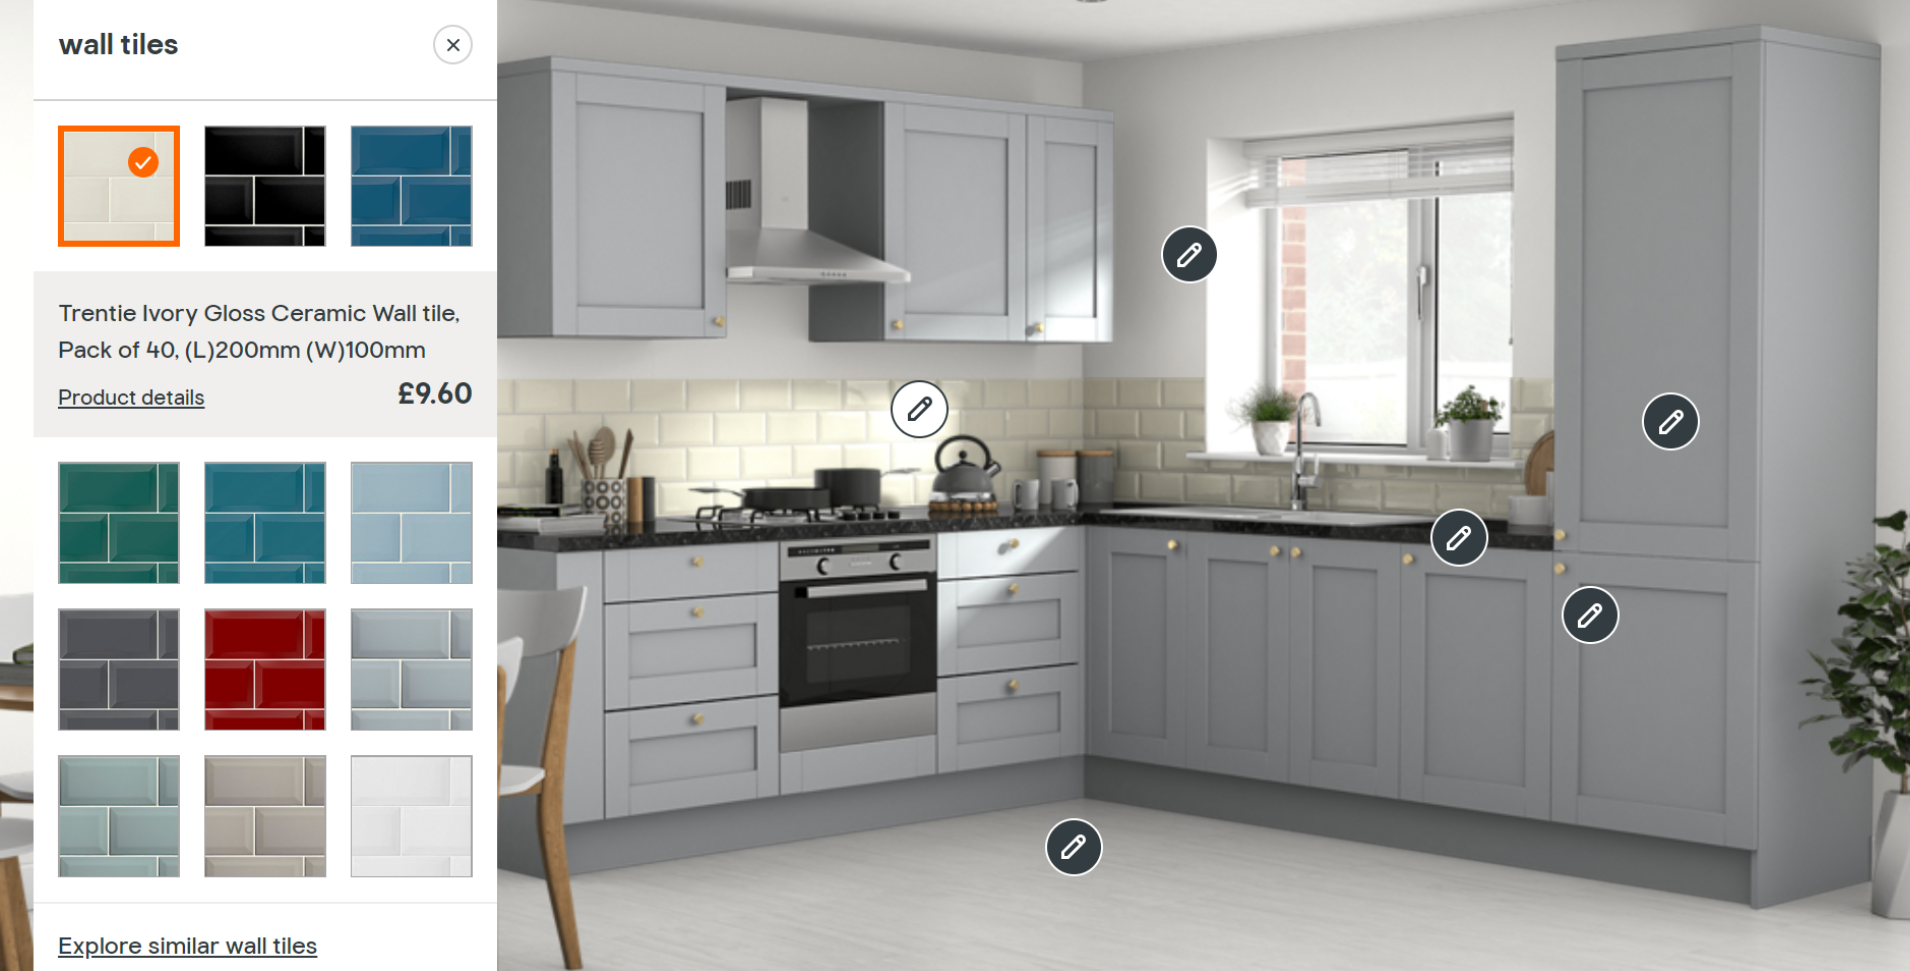 Kitchen planning tools to use at home